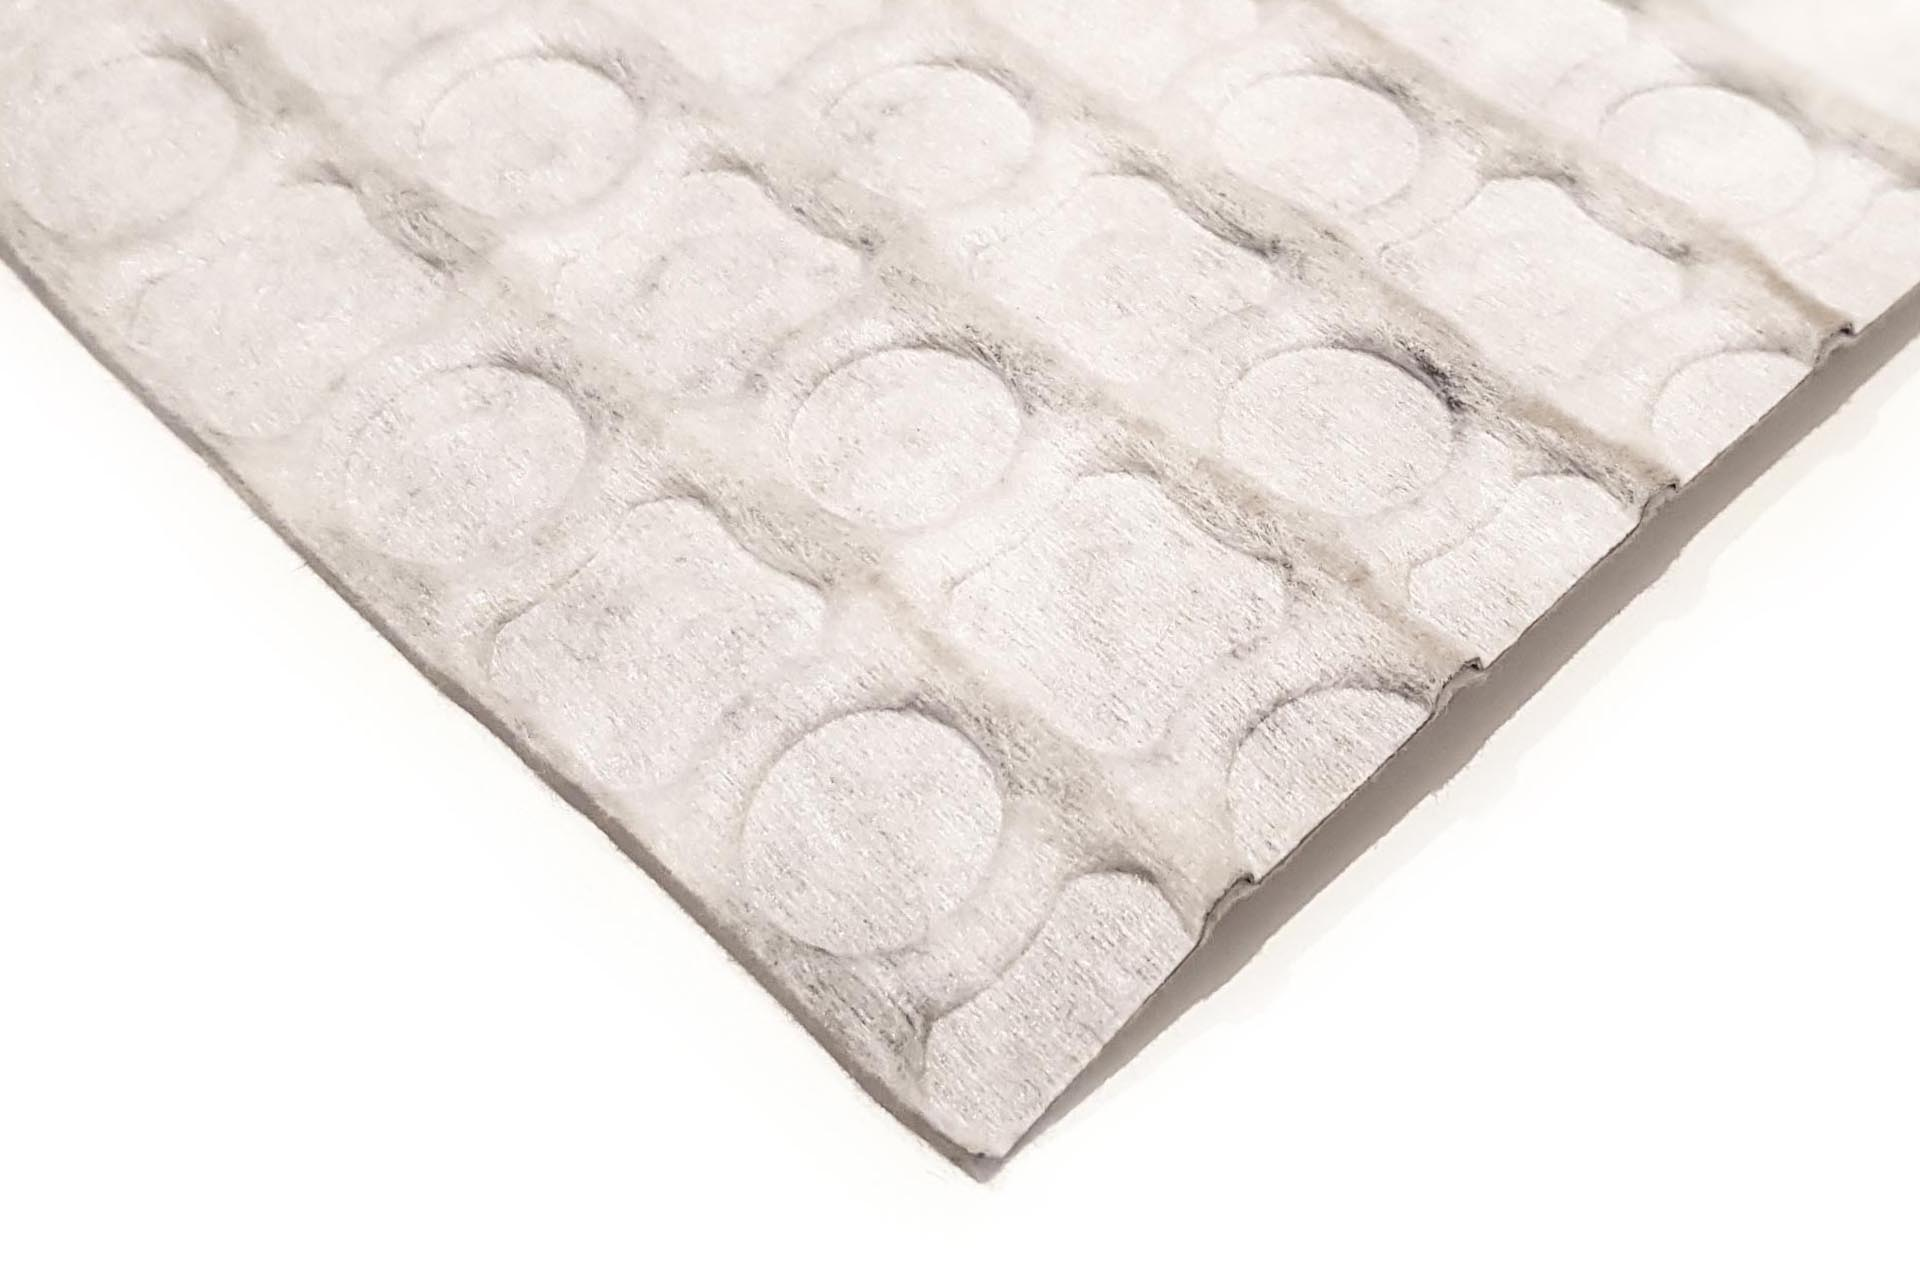 HDPE studded membrane, 3 mm thick, with one nonwoven textile